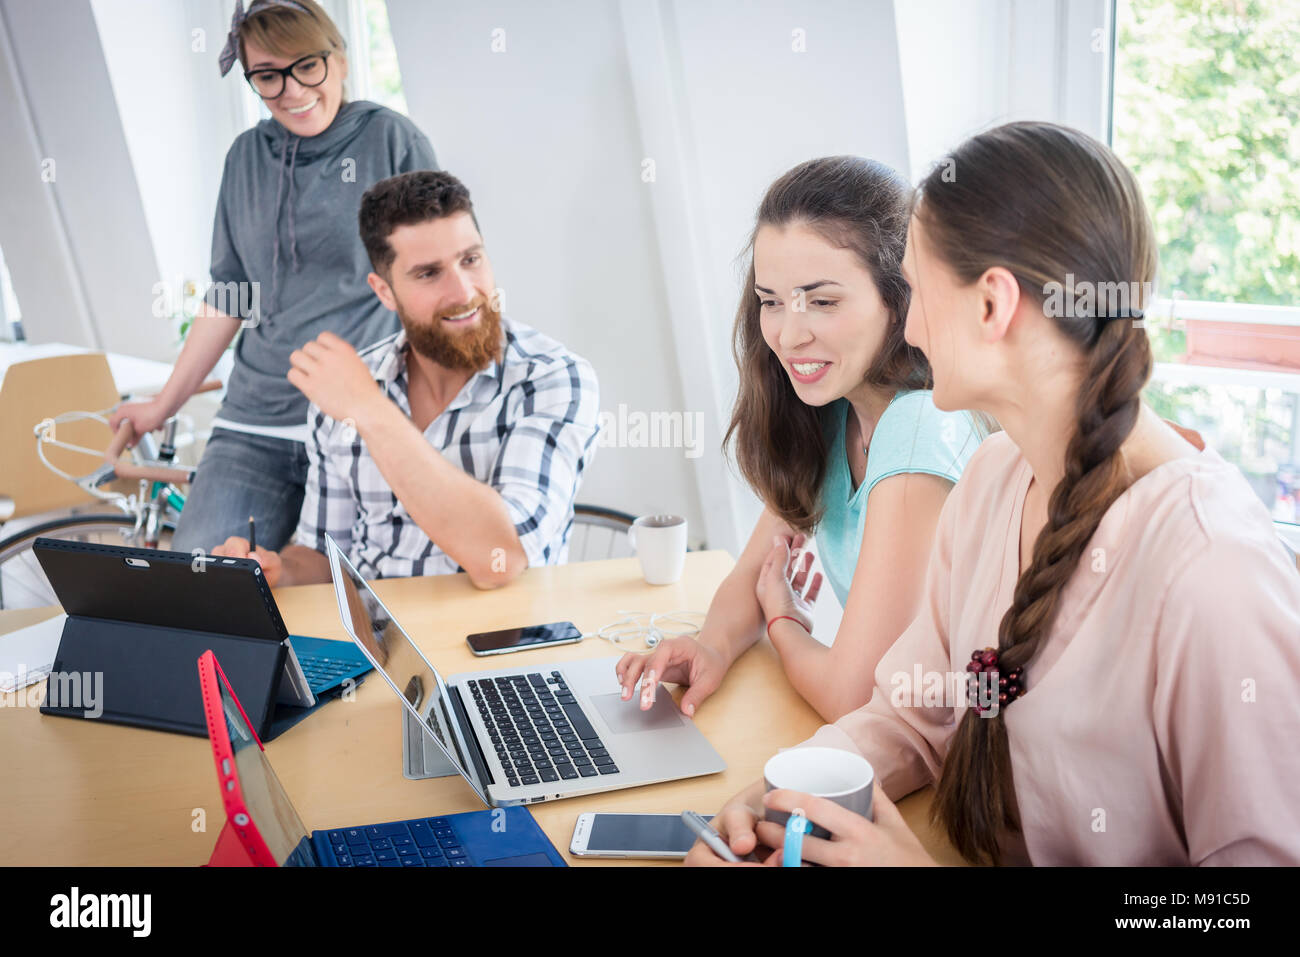 Proficient co-workers using wireless technology for telecommuting - Stock Image